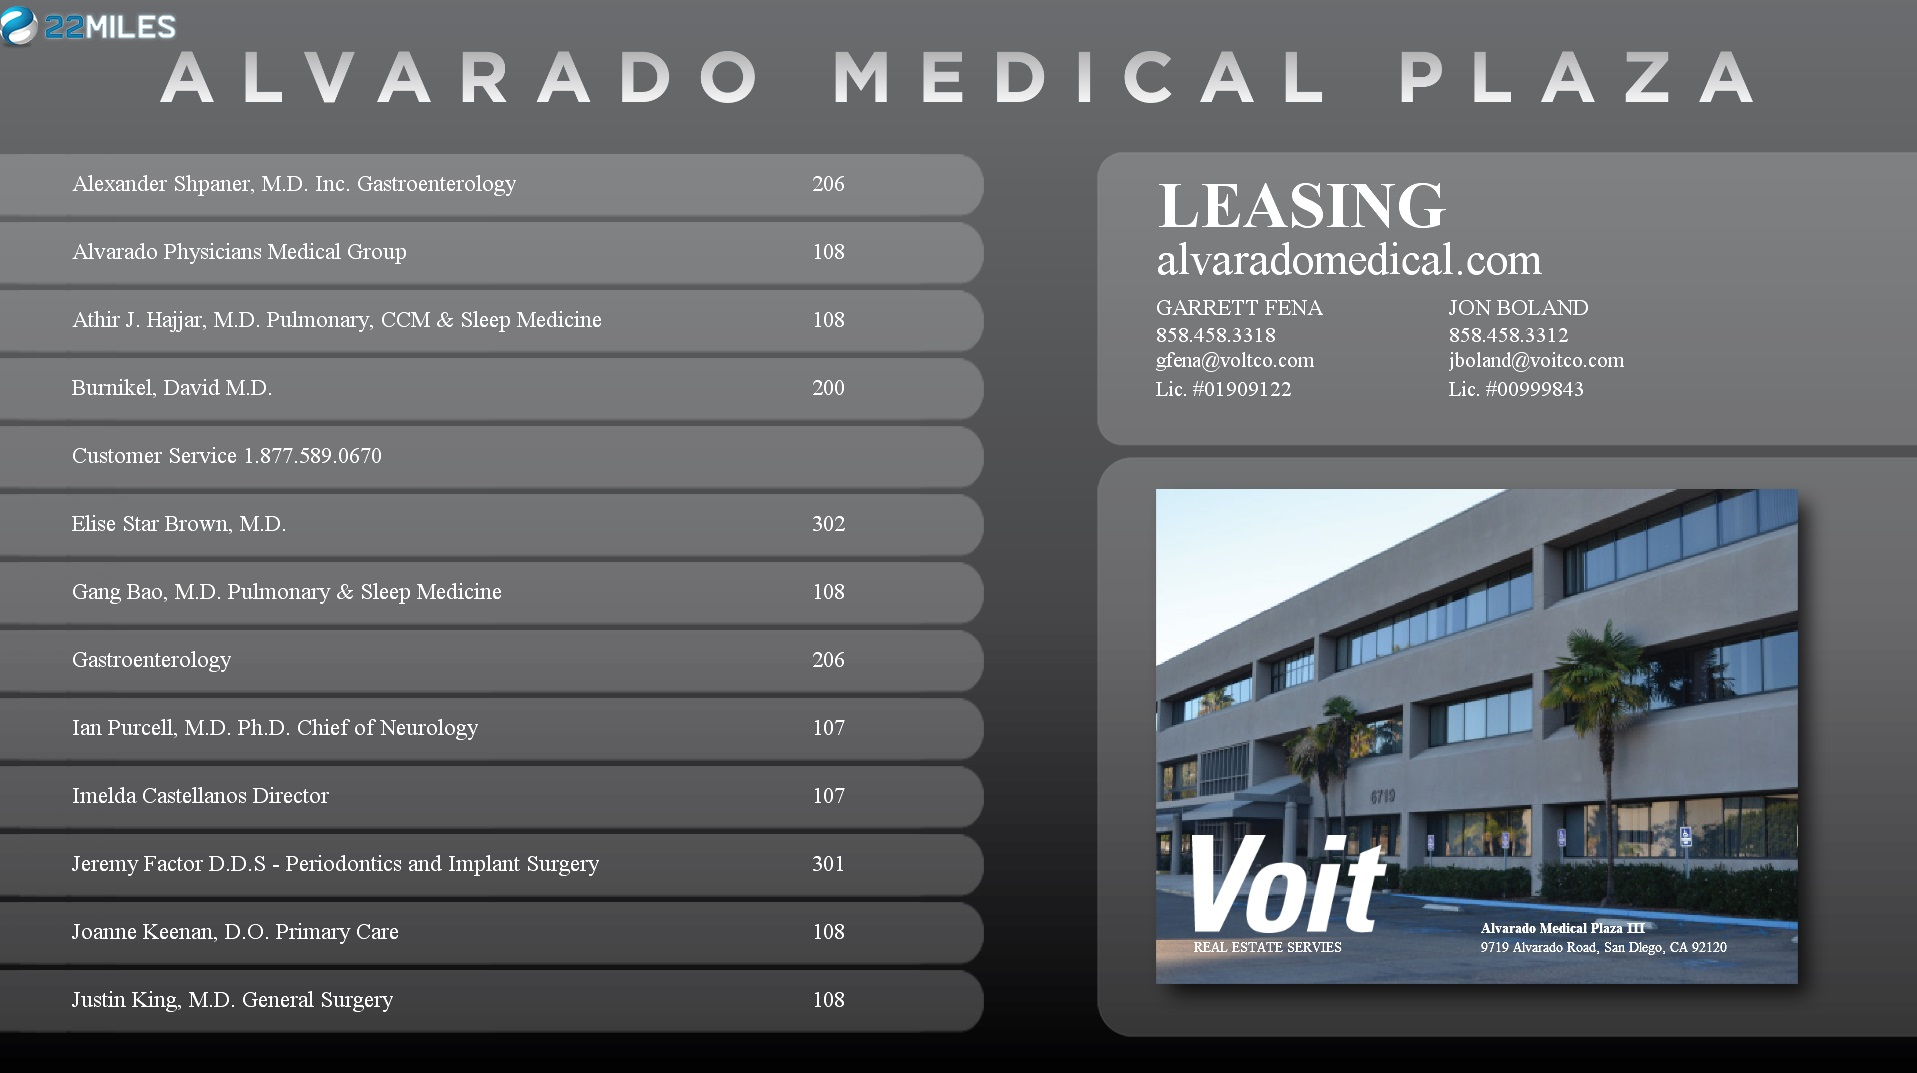 alvarado medical plaza digital signage directory